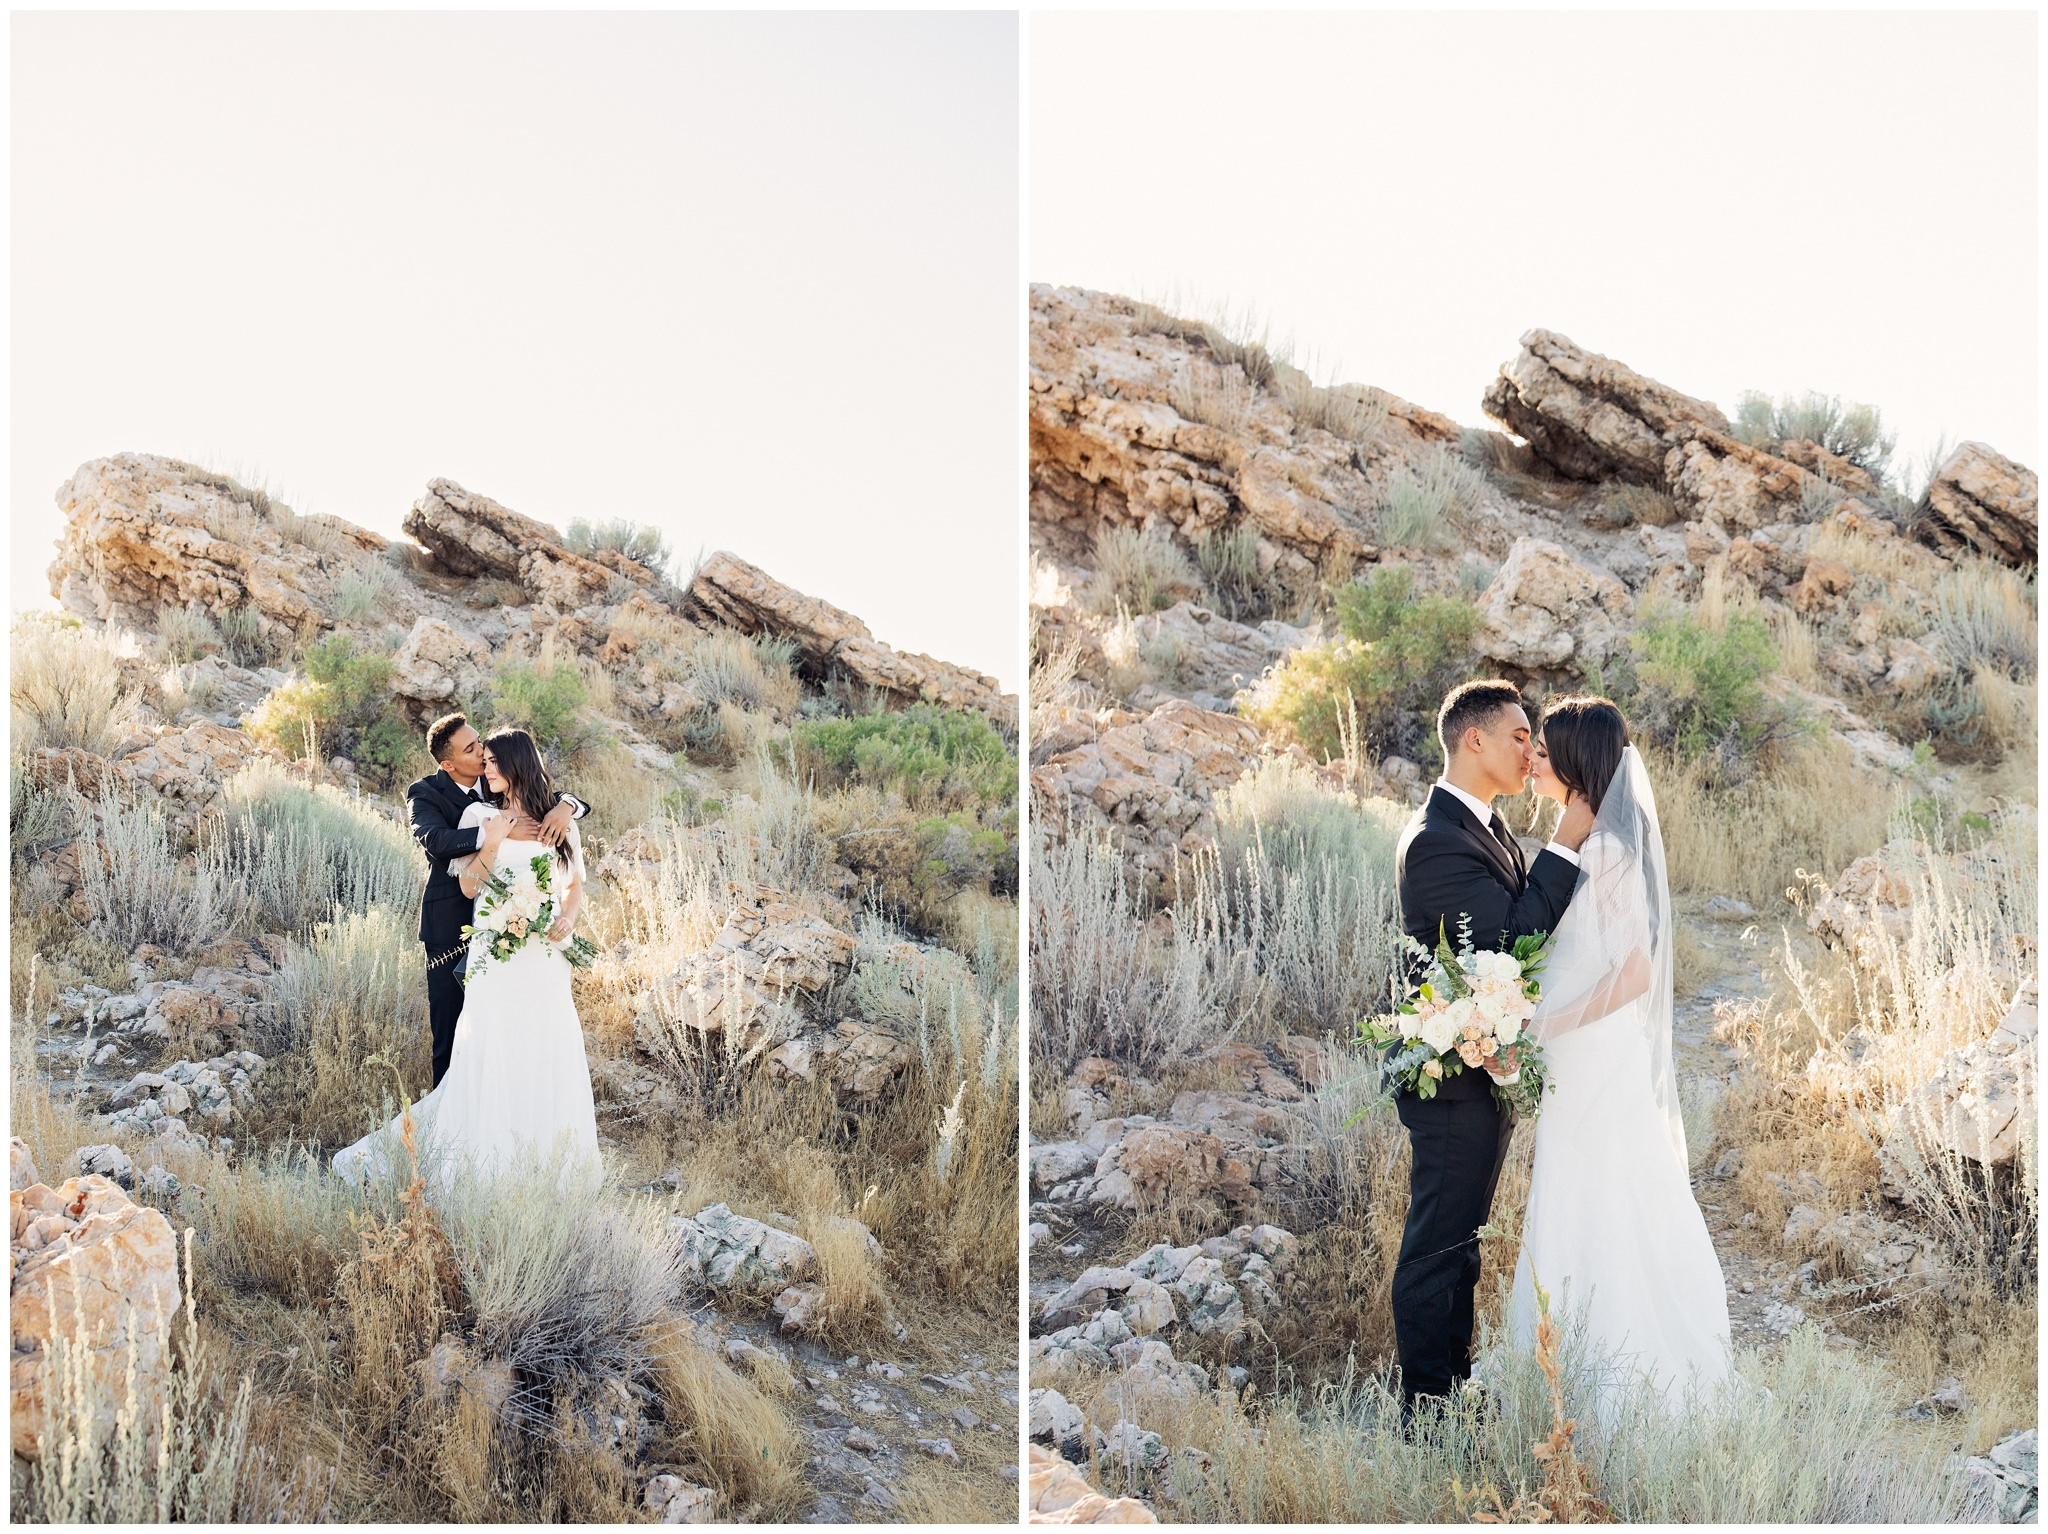 Bride and groom pictures of them kissing near rocks at Antelope Island